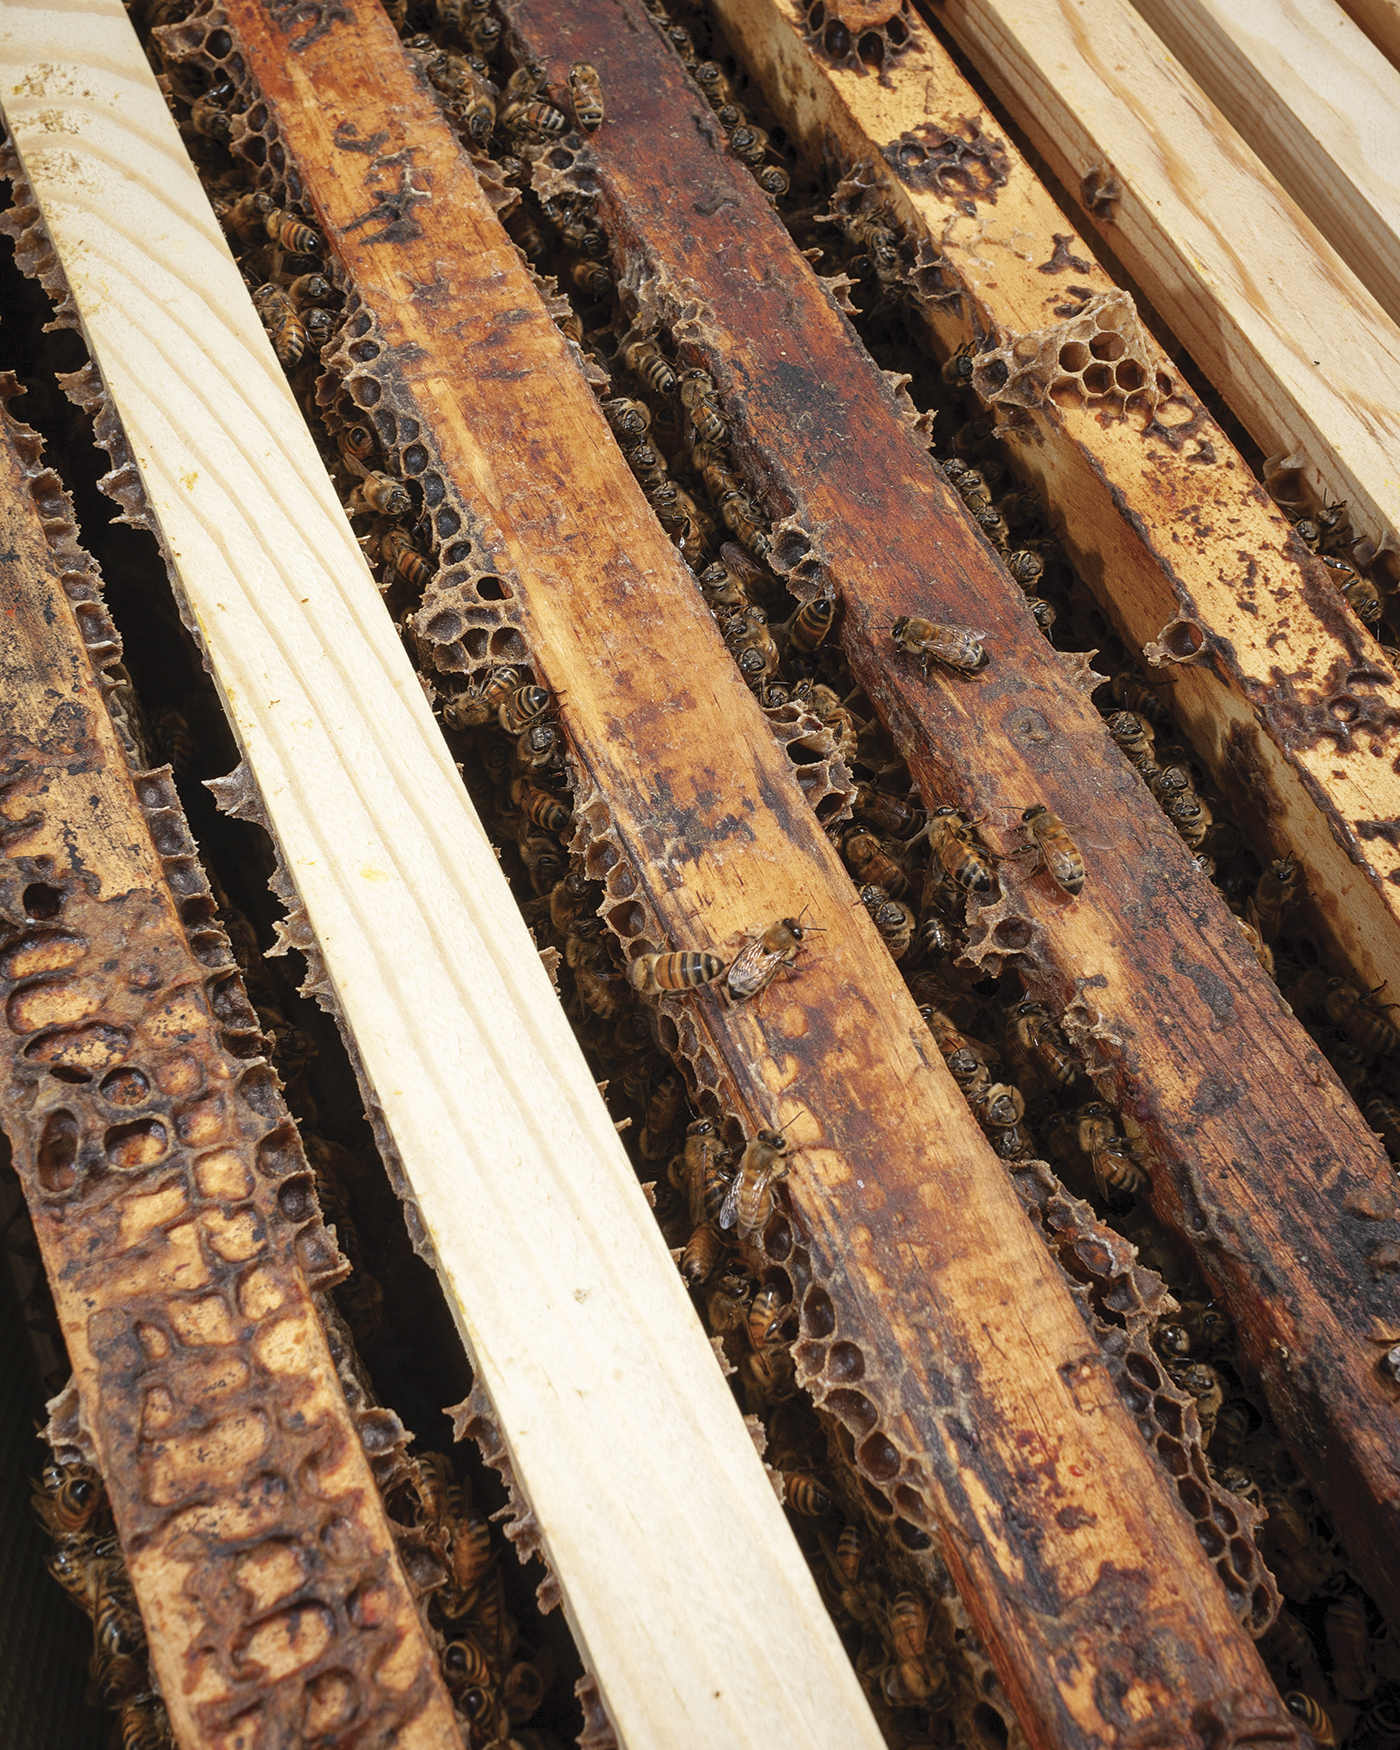 Close up of beehive frames with bees.